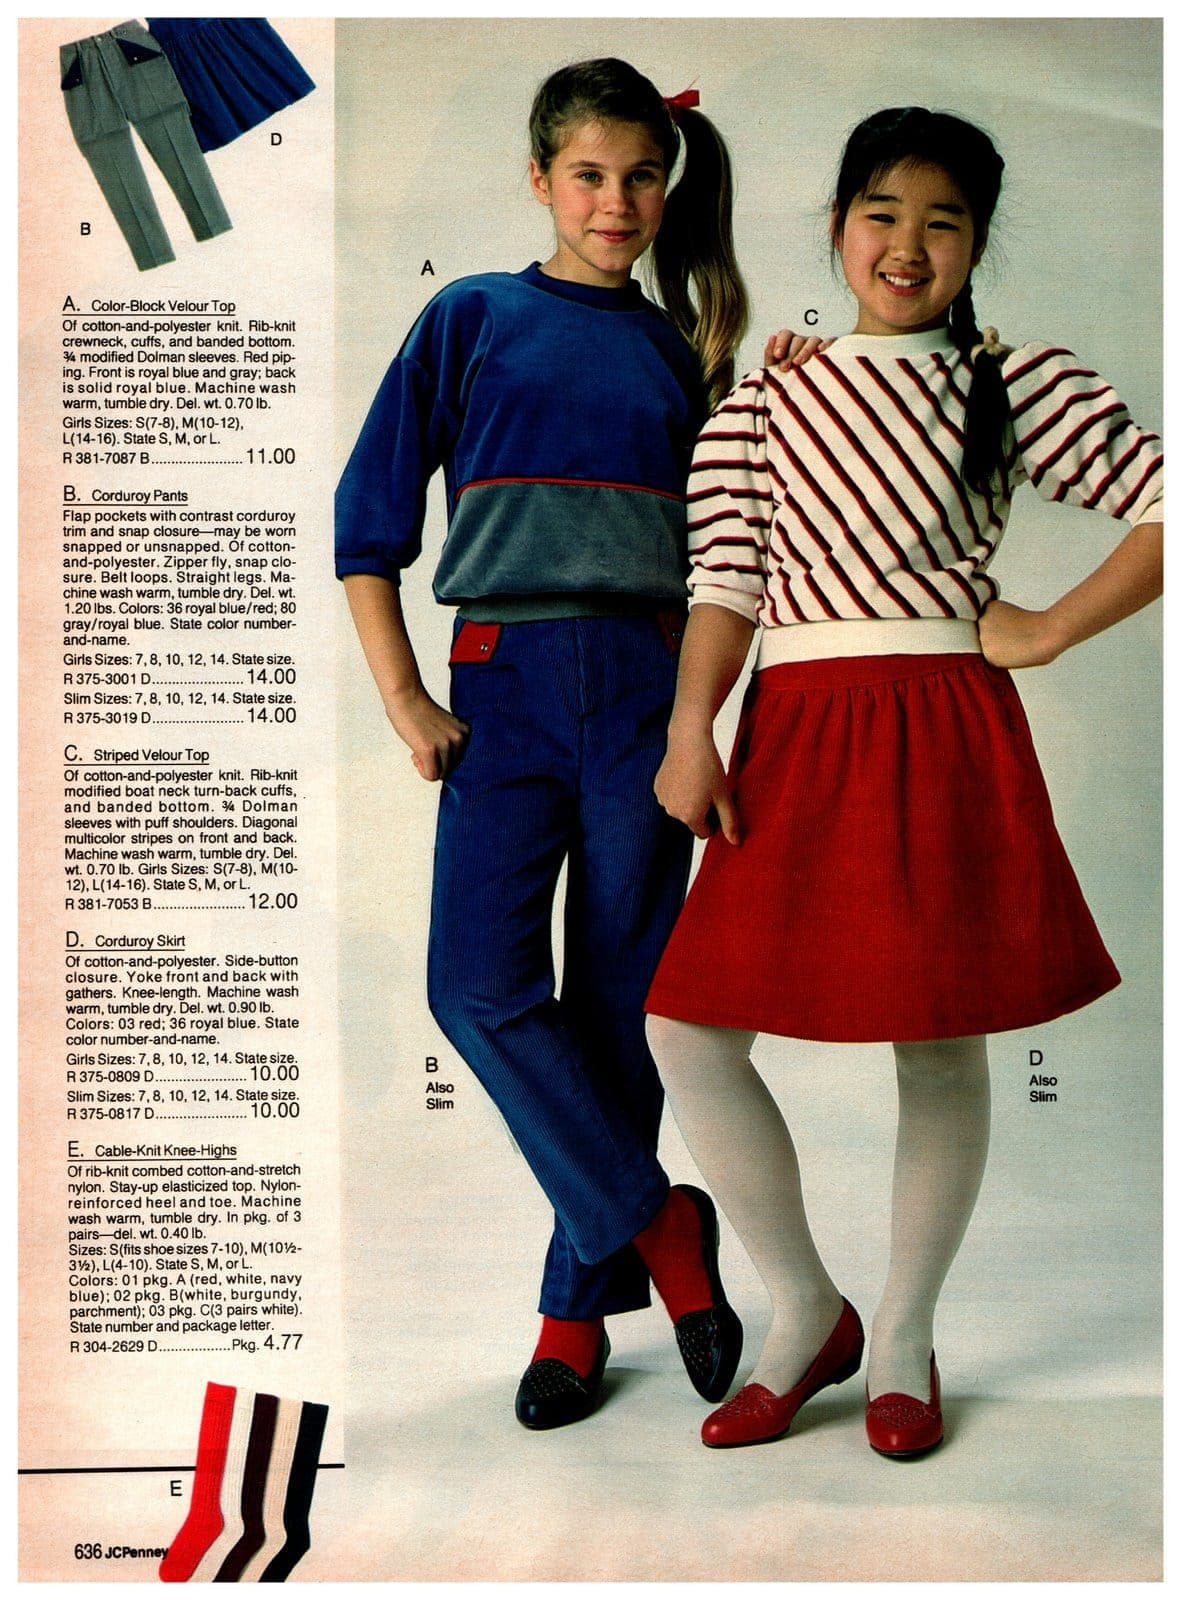 Color-block velour top and corduroy pants - and a striped velour top with a corduroy skirt